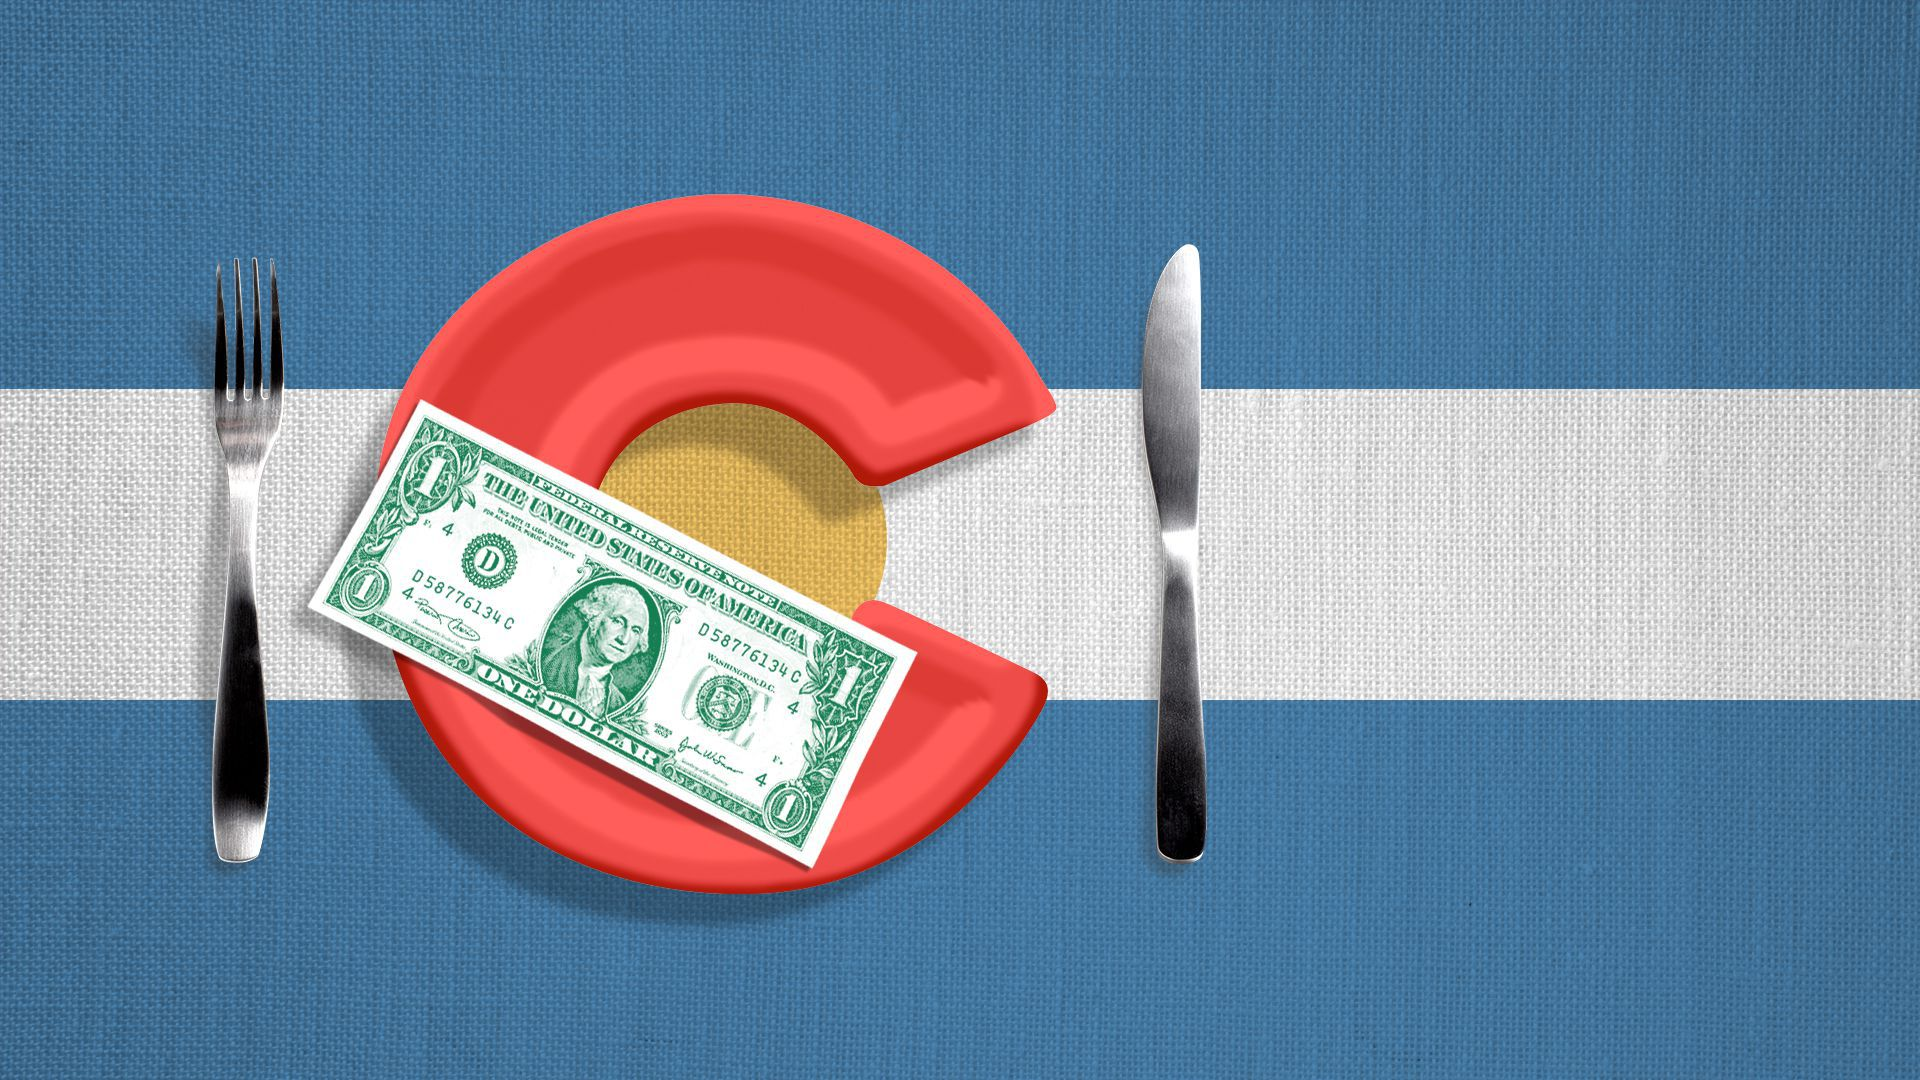 Illustration of the Colorado flag, with a plate for a C, a knife and fork alongside it, and a dollar on the plate.